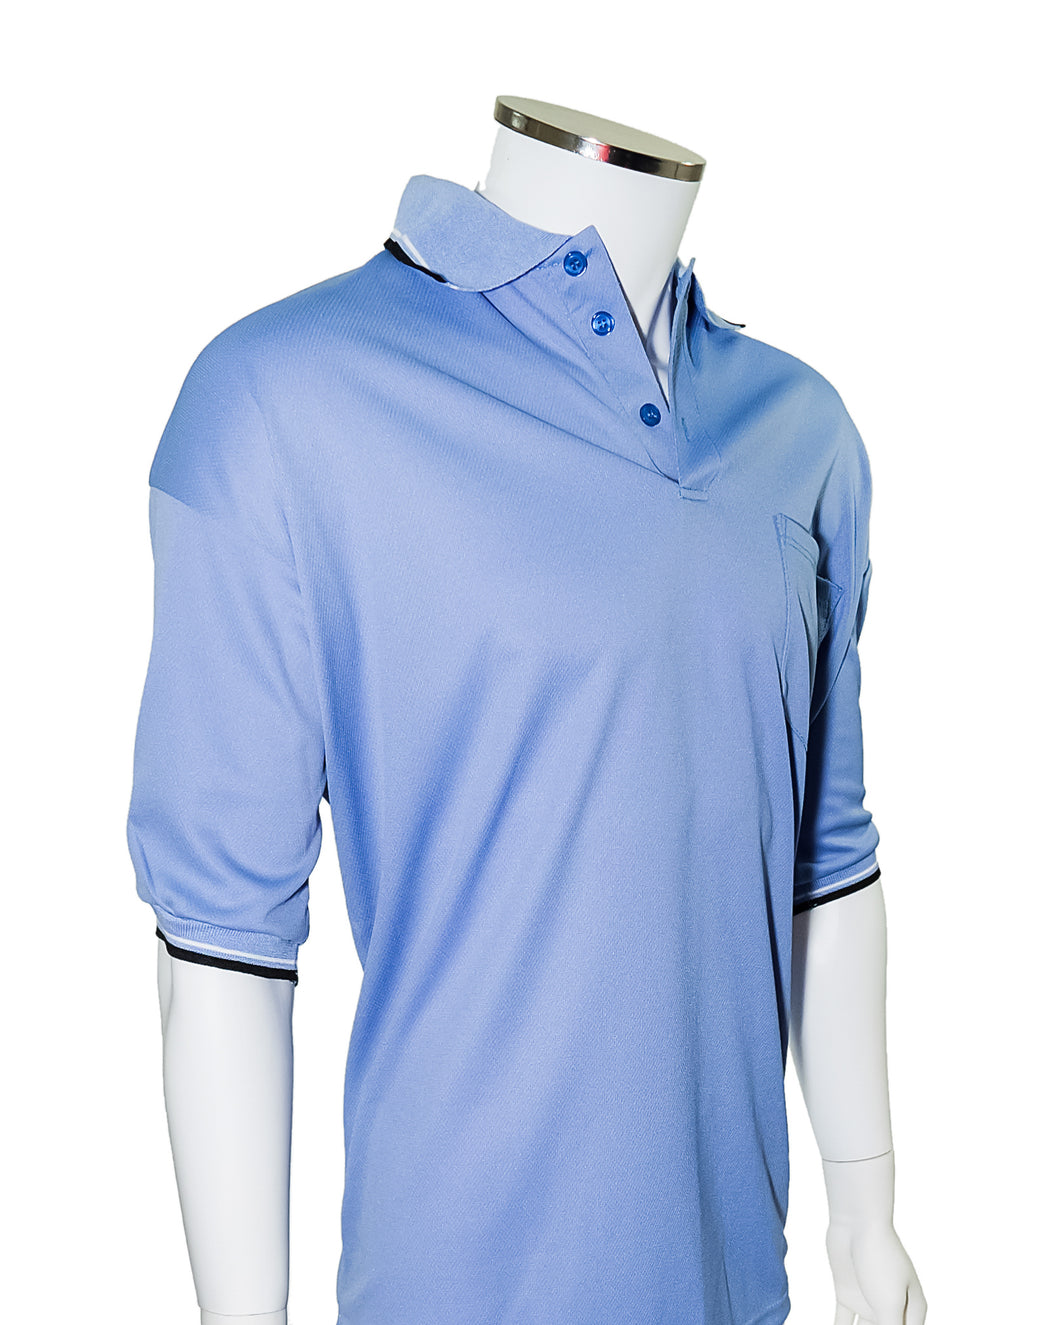 Major League Umpire Shirt - Powder Blue  (CLEARANCE) - Officials Depot